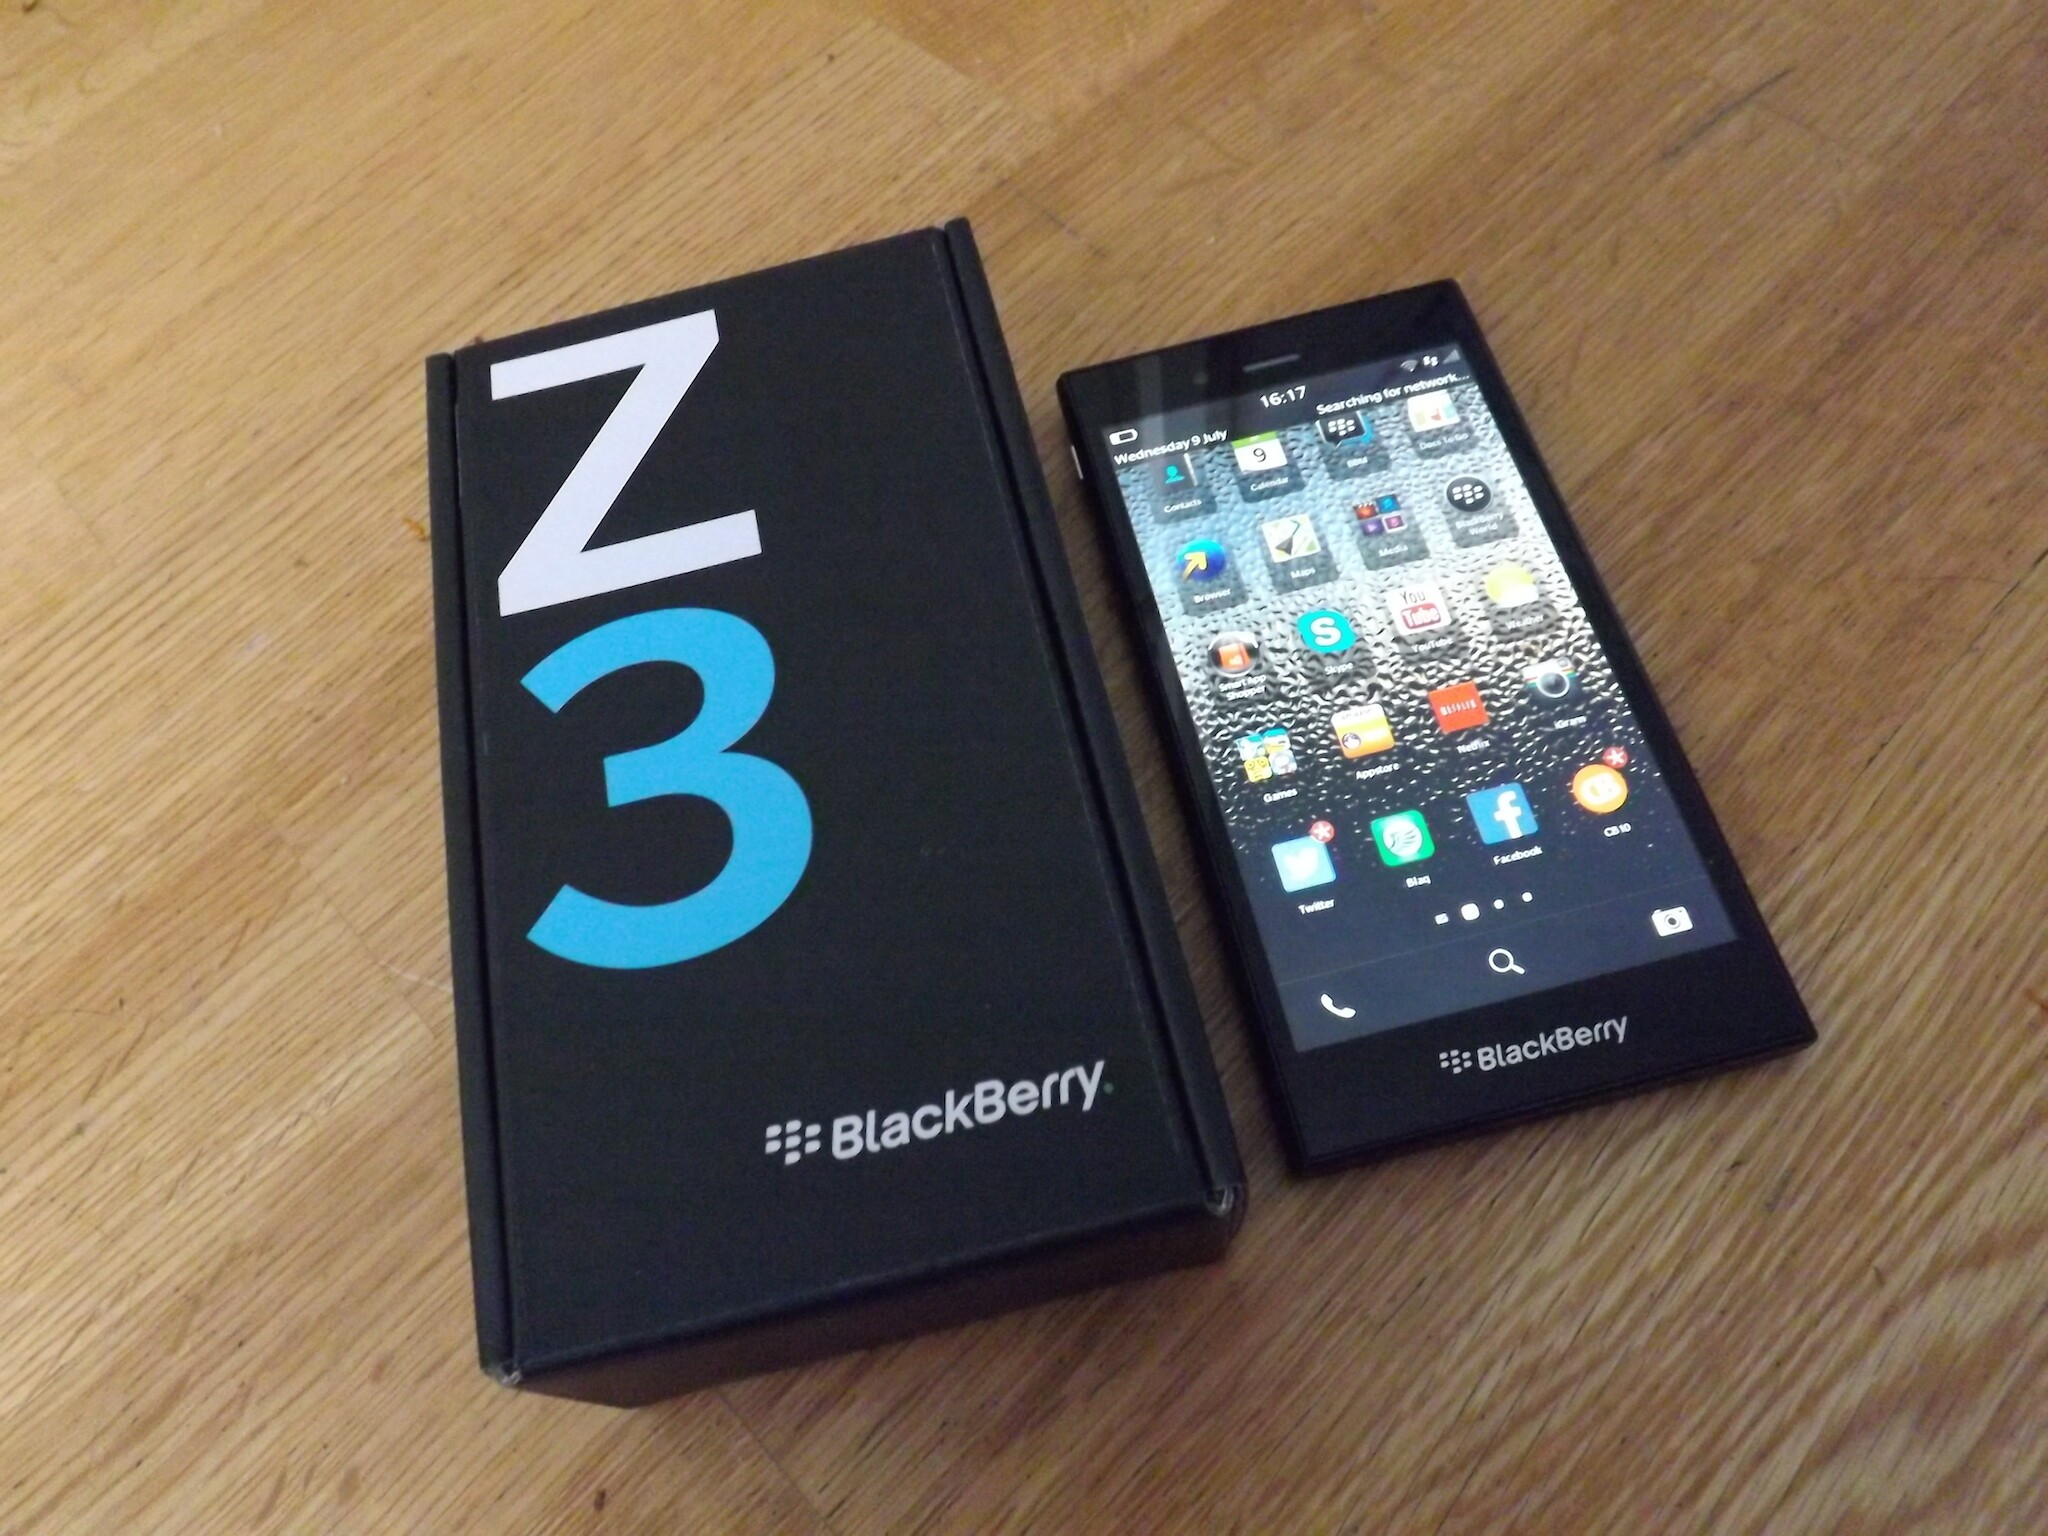 South African students are more than impressed with the BlackBerry Z3